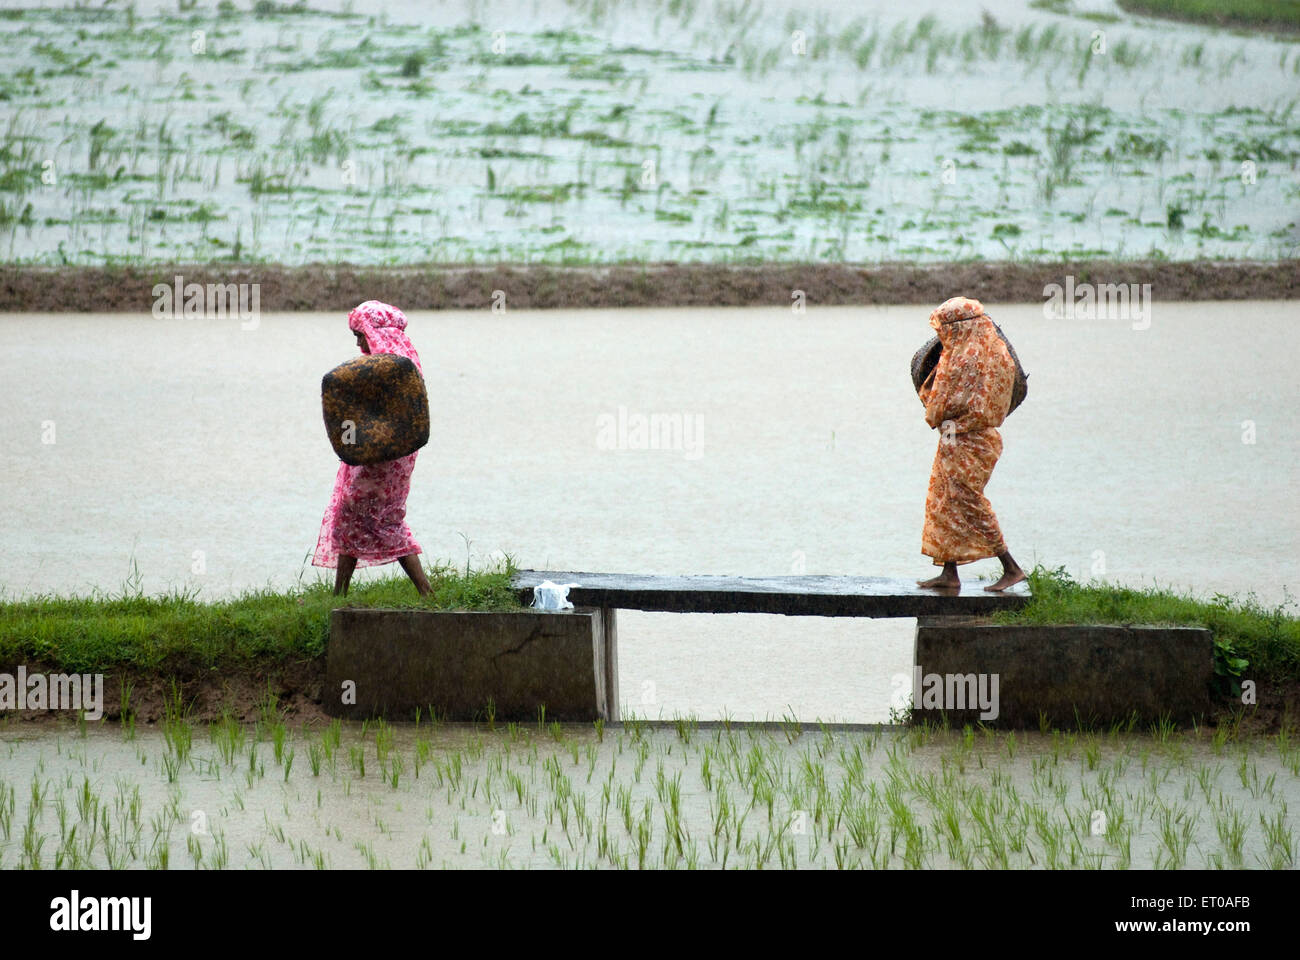 Farm workers in rice field during monsoon day near Palakkad ; Kerala ; India - Stock Image